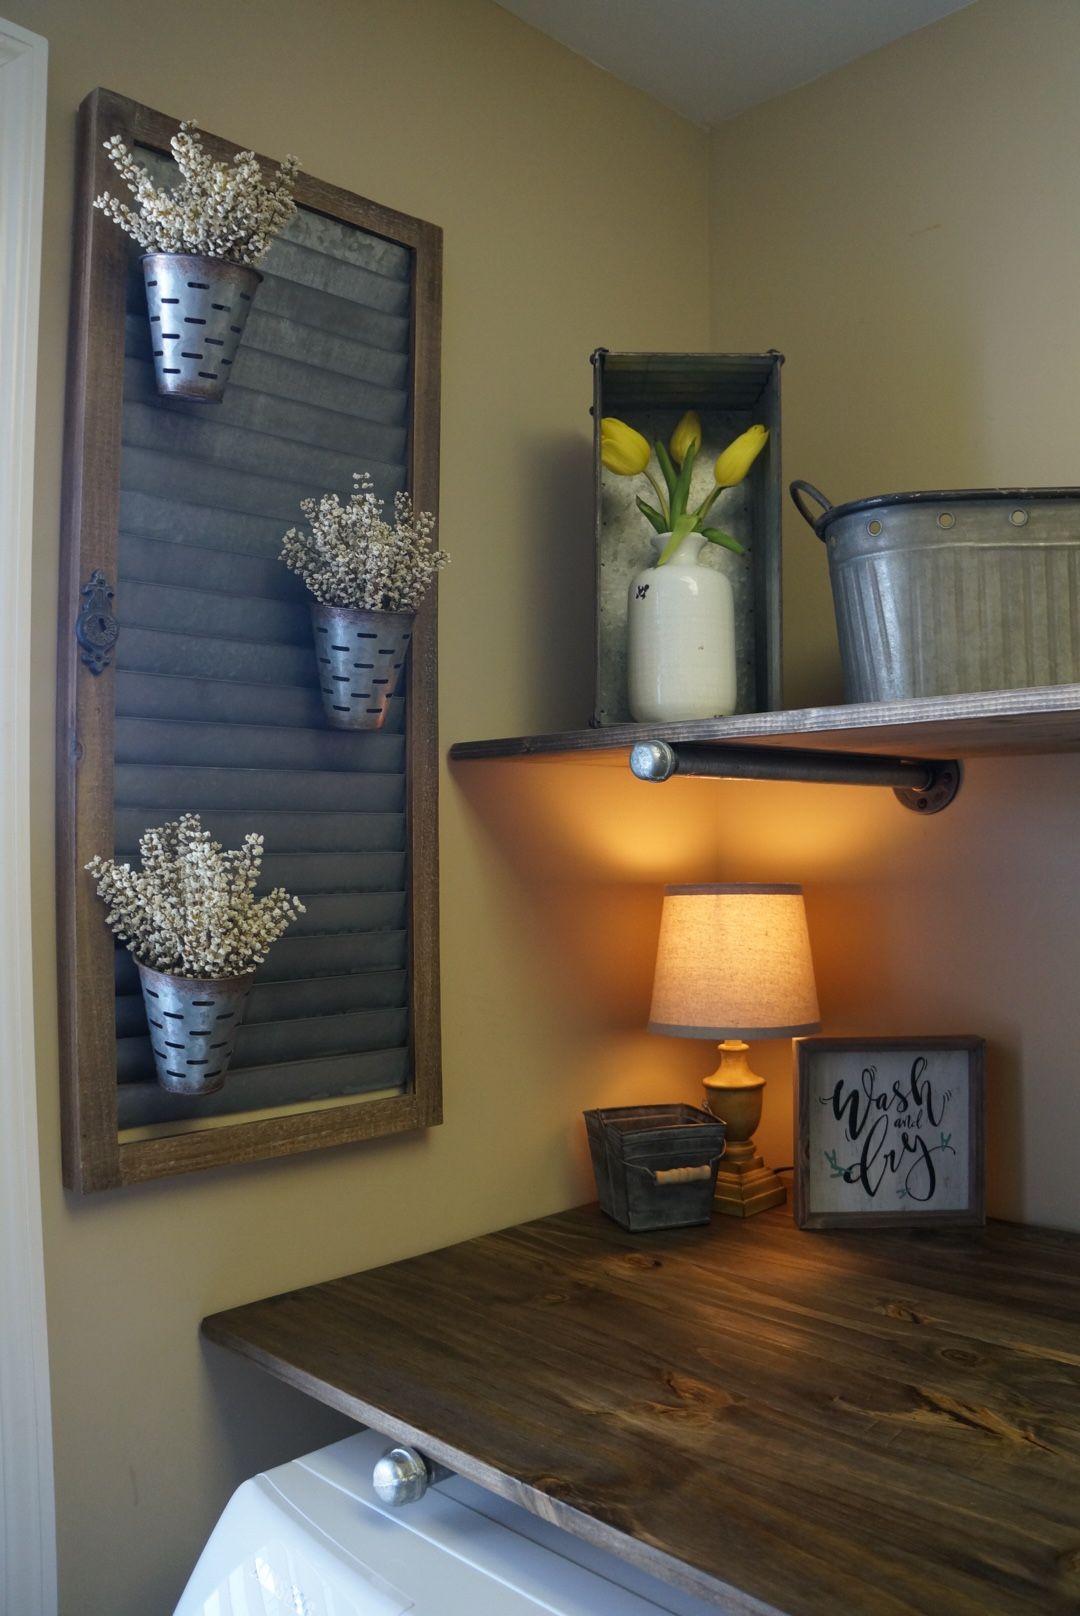 How To Do A Weekend DIY Laundry Room Mini Makeover Using Rustic Industrial Pipe Shelves And Cute Farmhouse Decor All On Budget Of Less Than 250